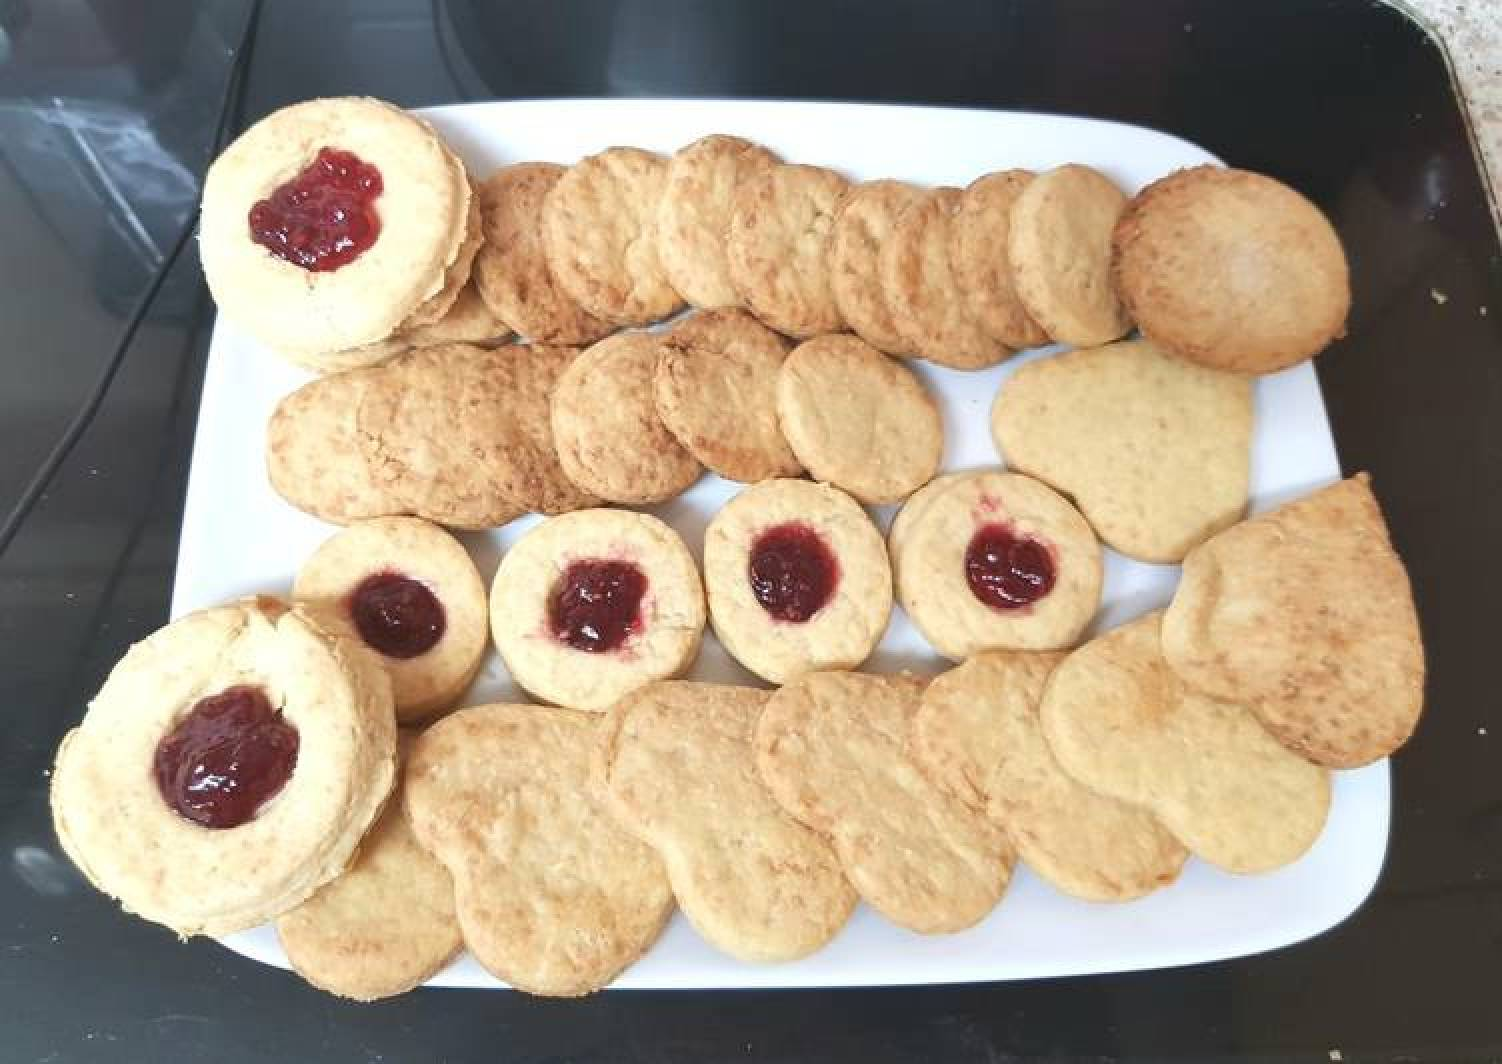 My Shortbread Buscuits some with Raspberry Jam. 😎